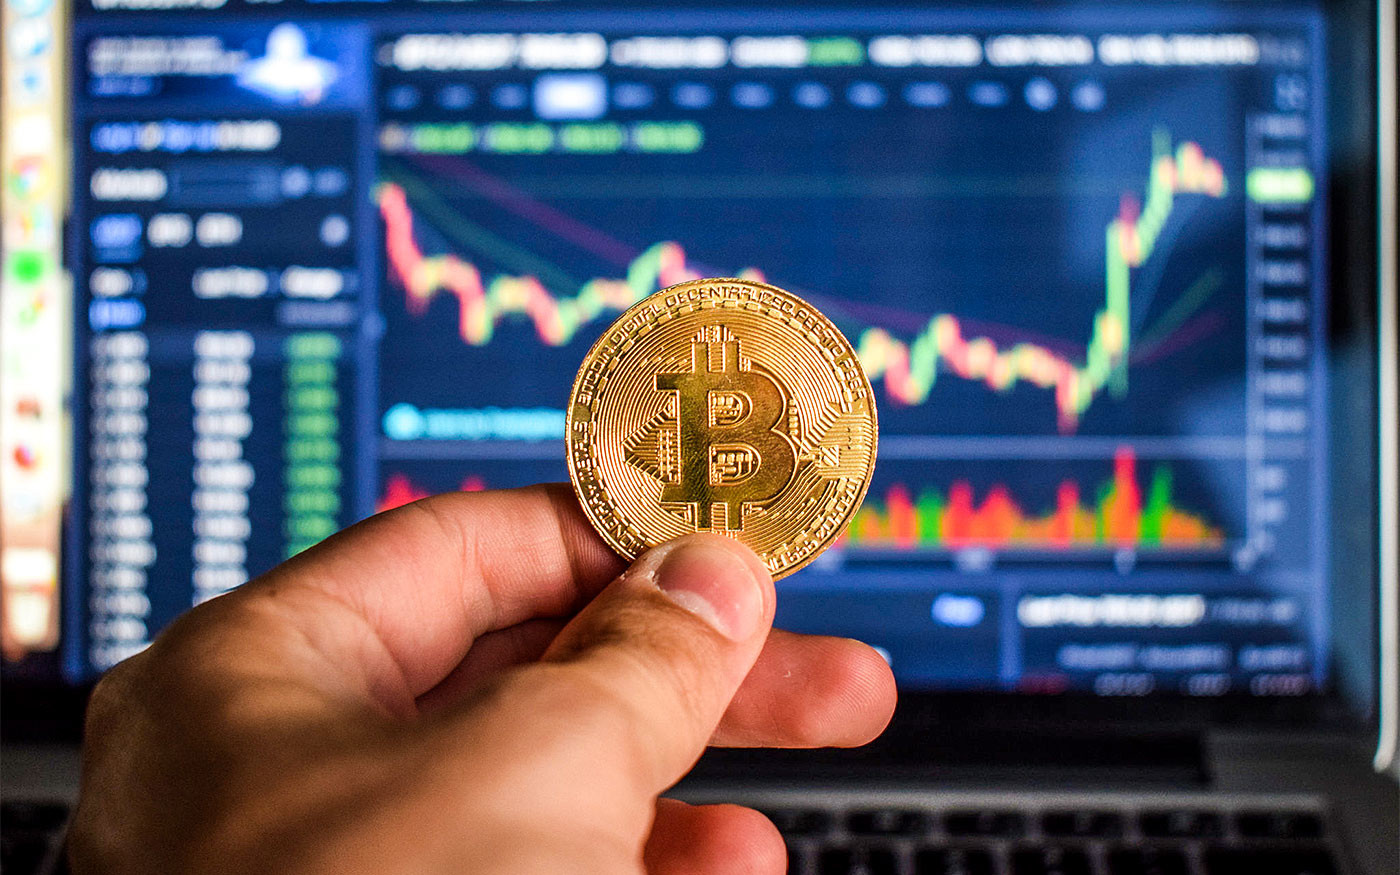 Bitcoin Steadies as Bank of England Suddenly Cuts Rates to 11-Year Low